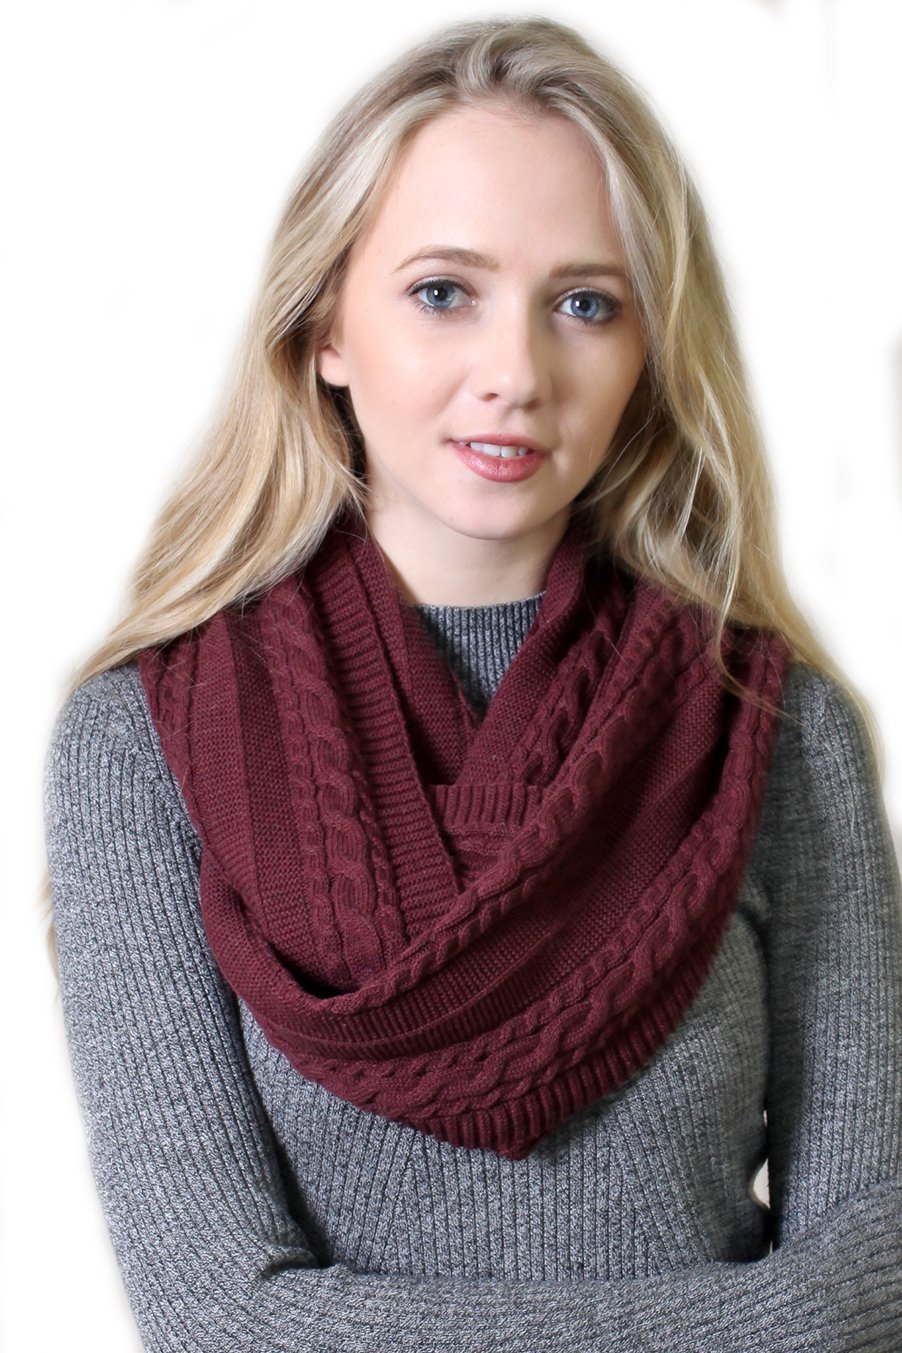 Women's 100% Organic Cotton Cable Knit Infinity Scarf, Super Soft Stretch Warm Non-Toxic (4 COLORS) (Plum)